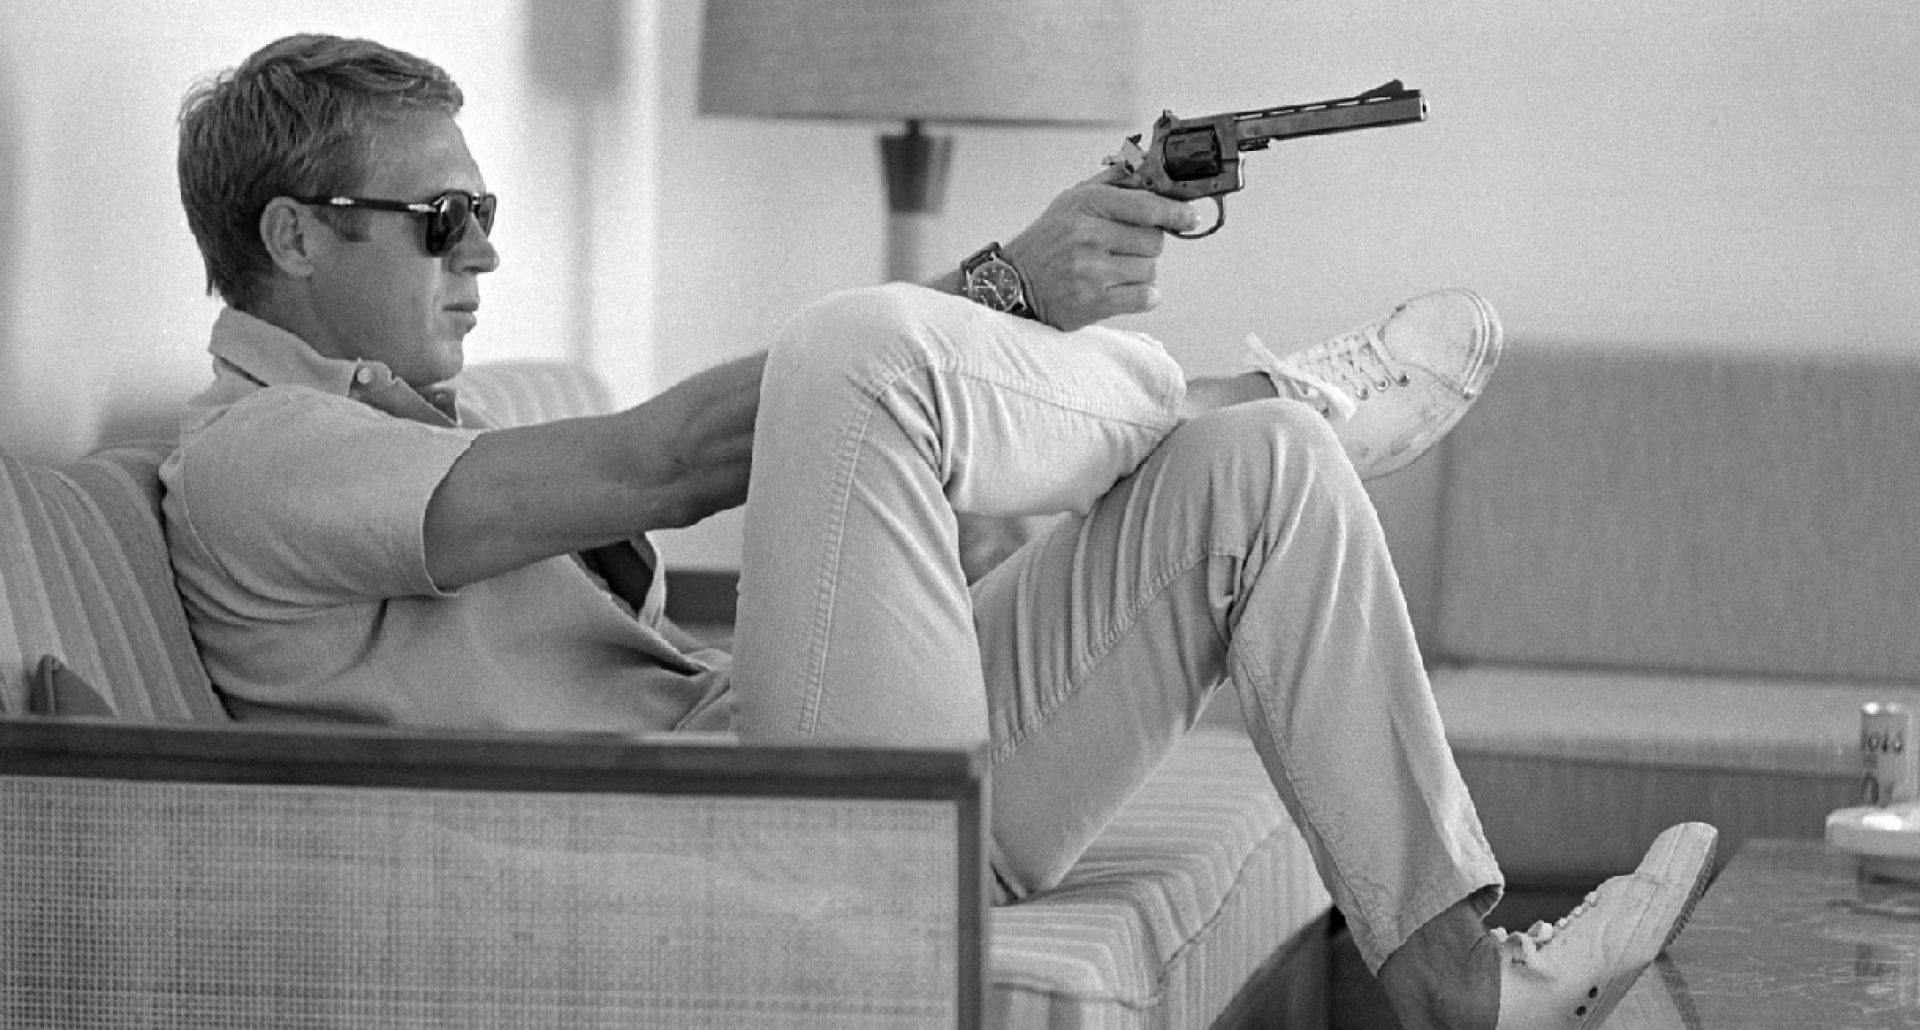 The story behind Steve McQueen's revolver